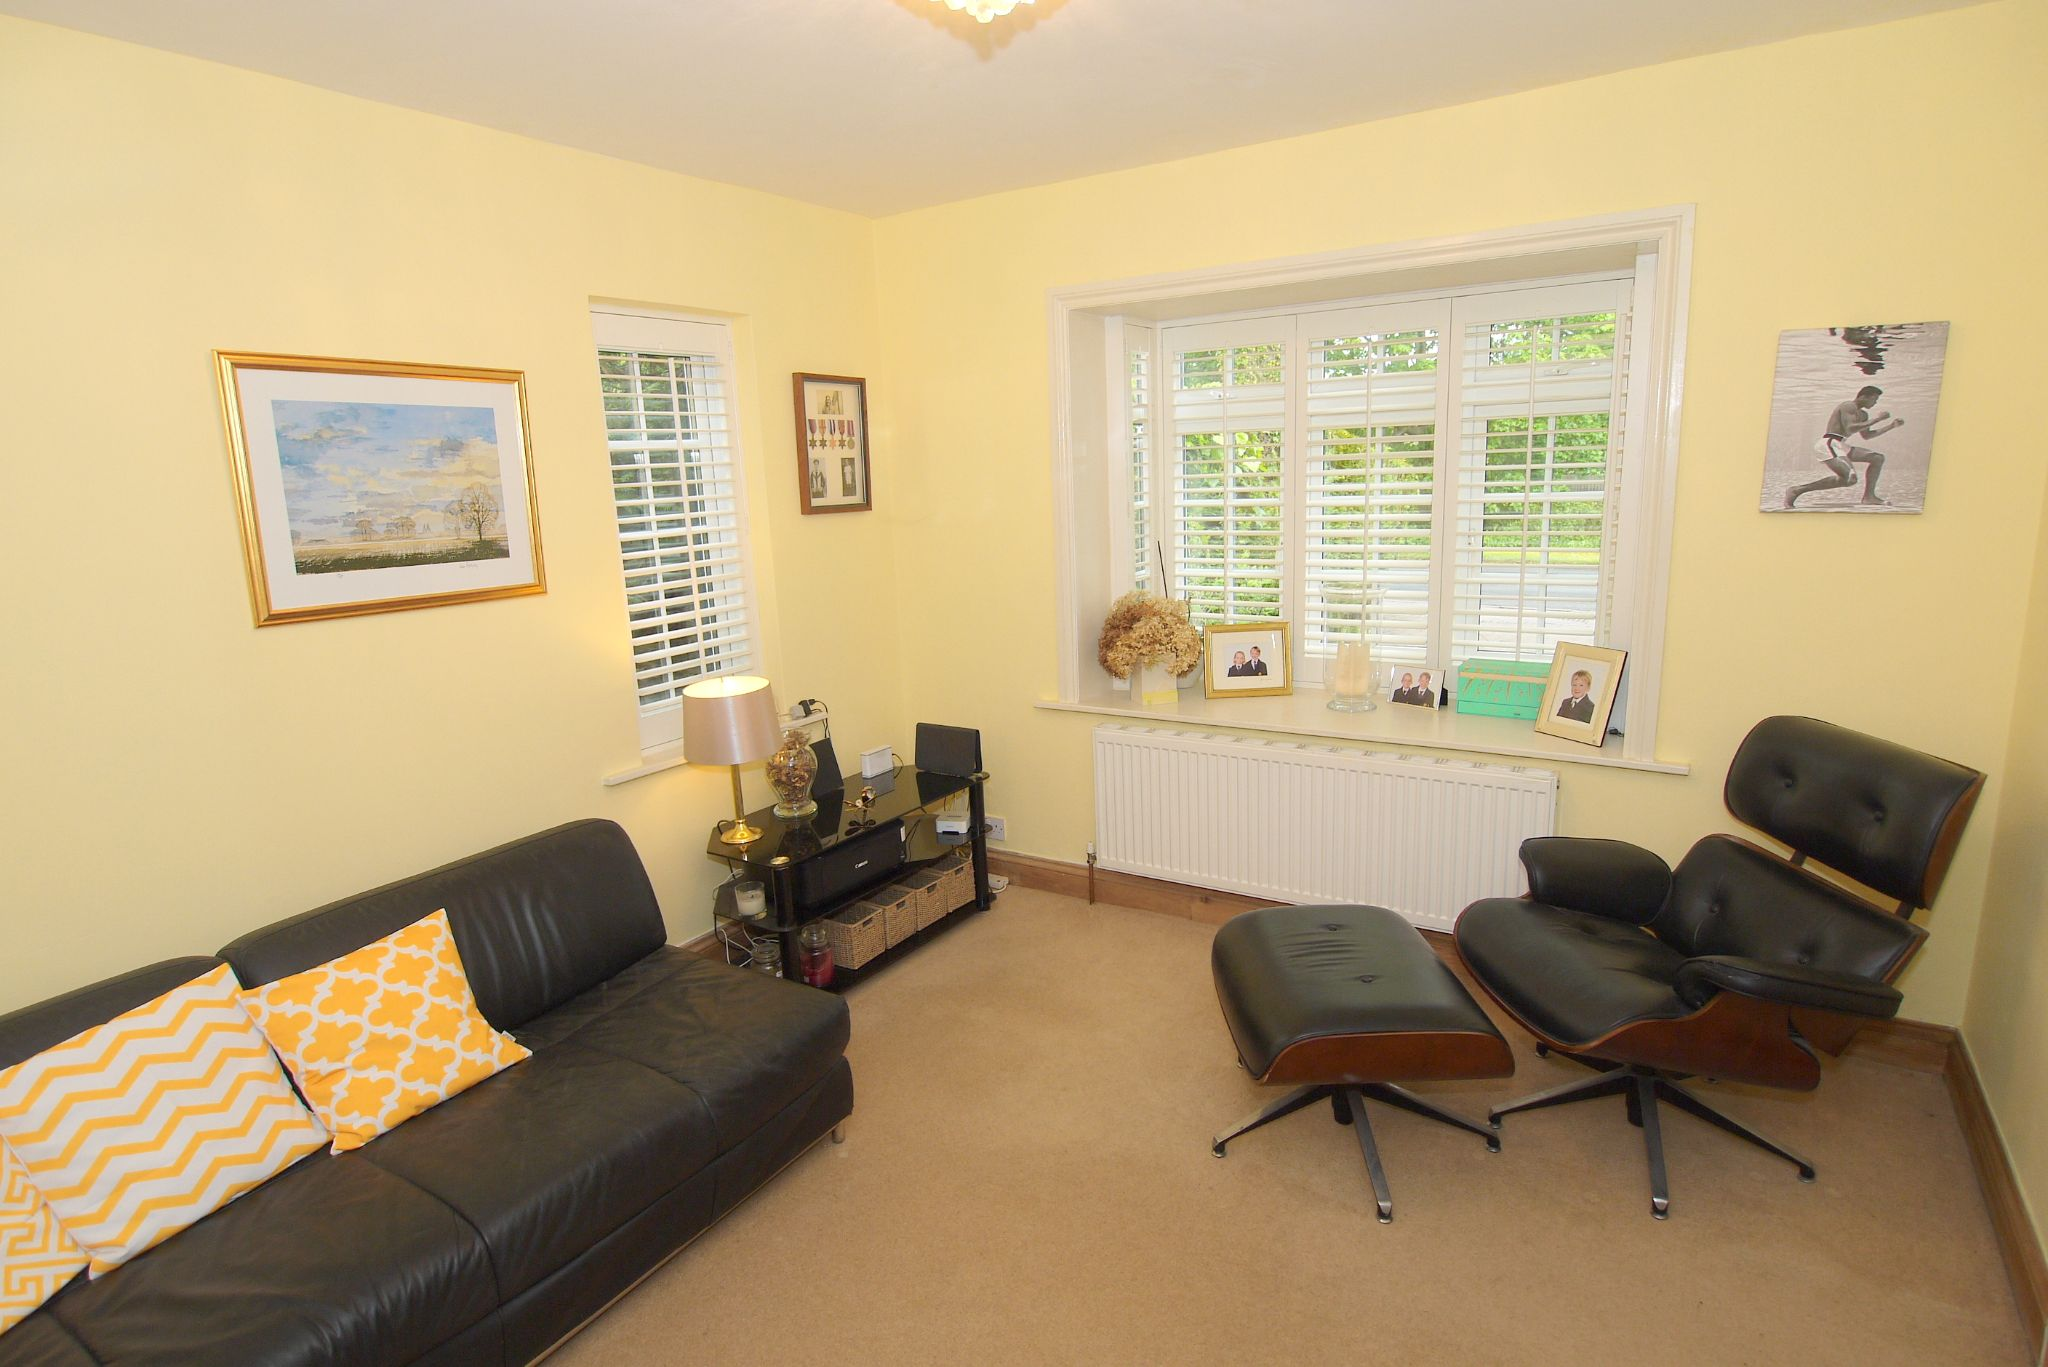 4 bedroom detached house Sale Agreed in Tonbridge - Photograph 7